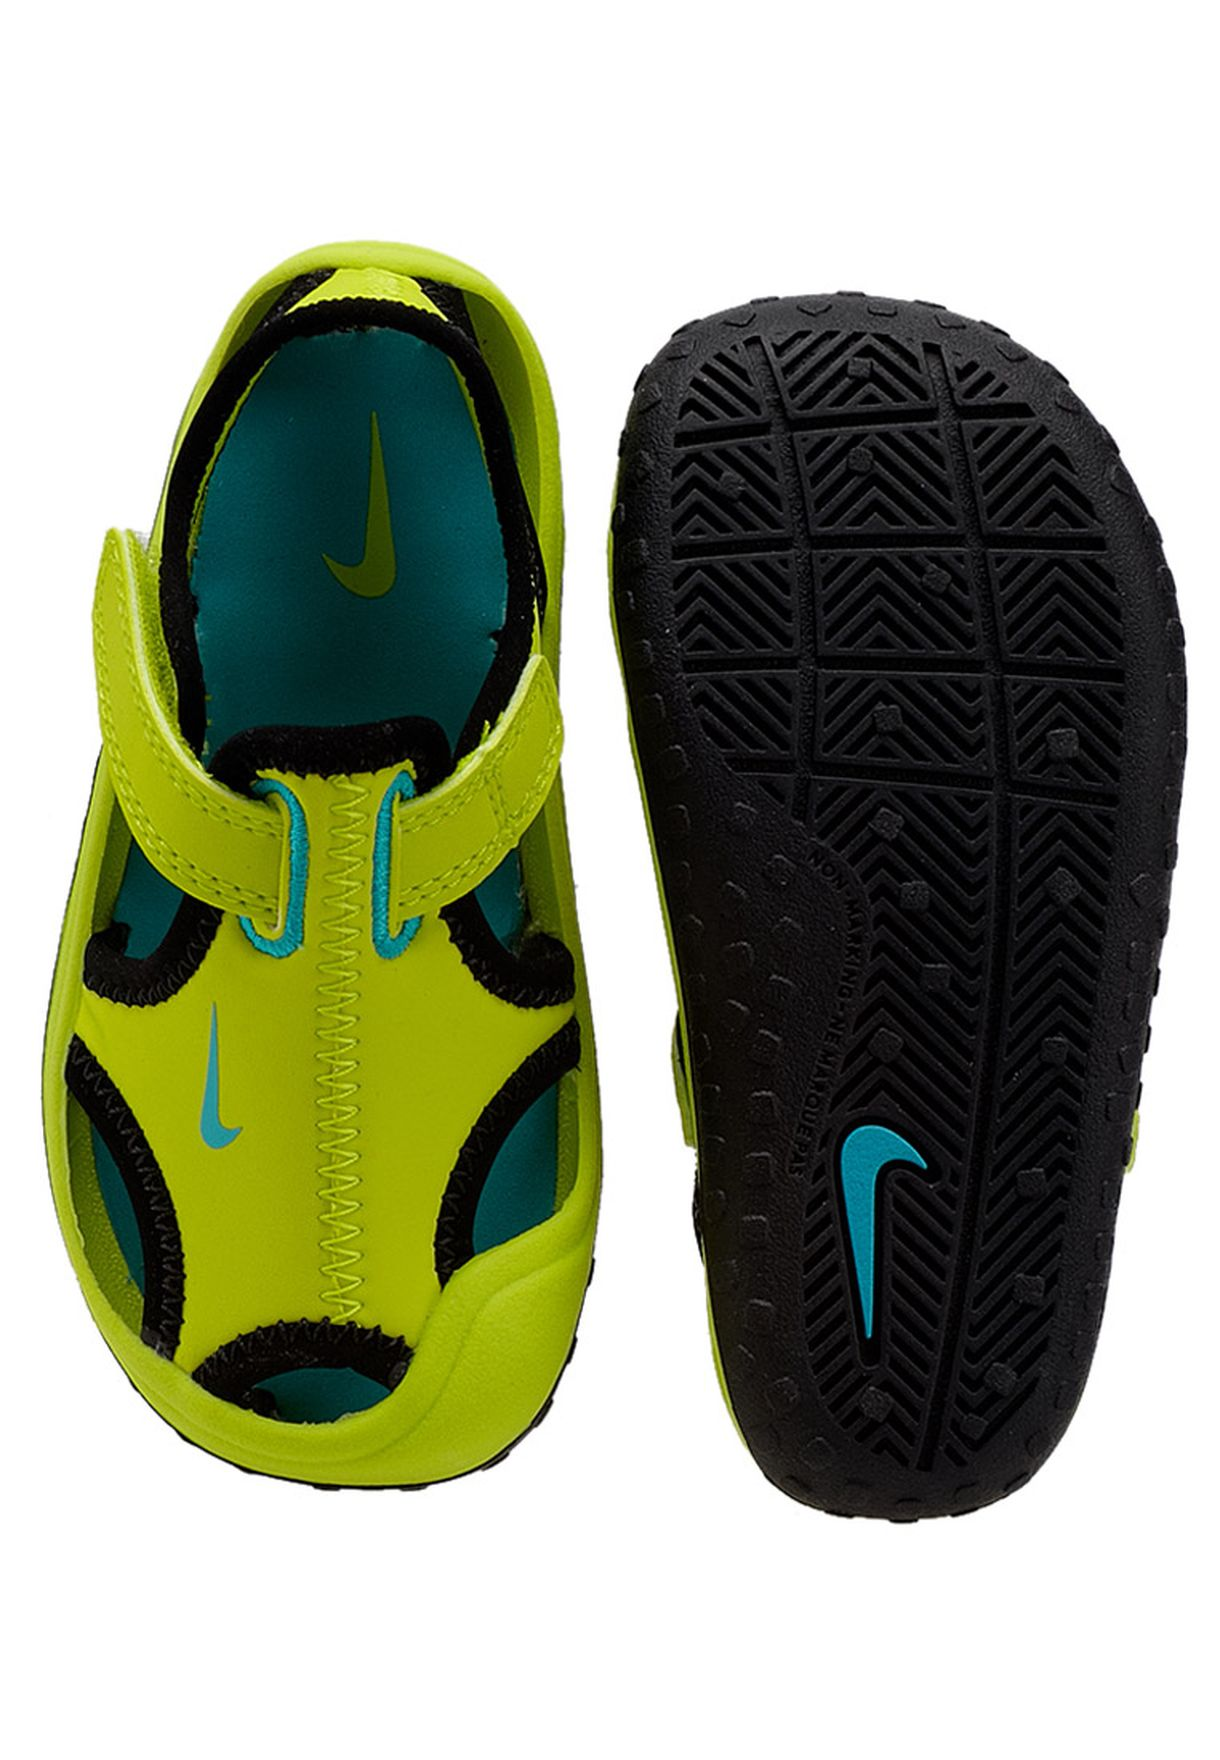 17cfef2d064 Shop Nike green Sunray Protect Sandals 344925-300 for Kids in ...